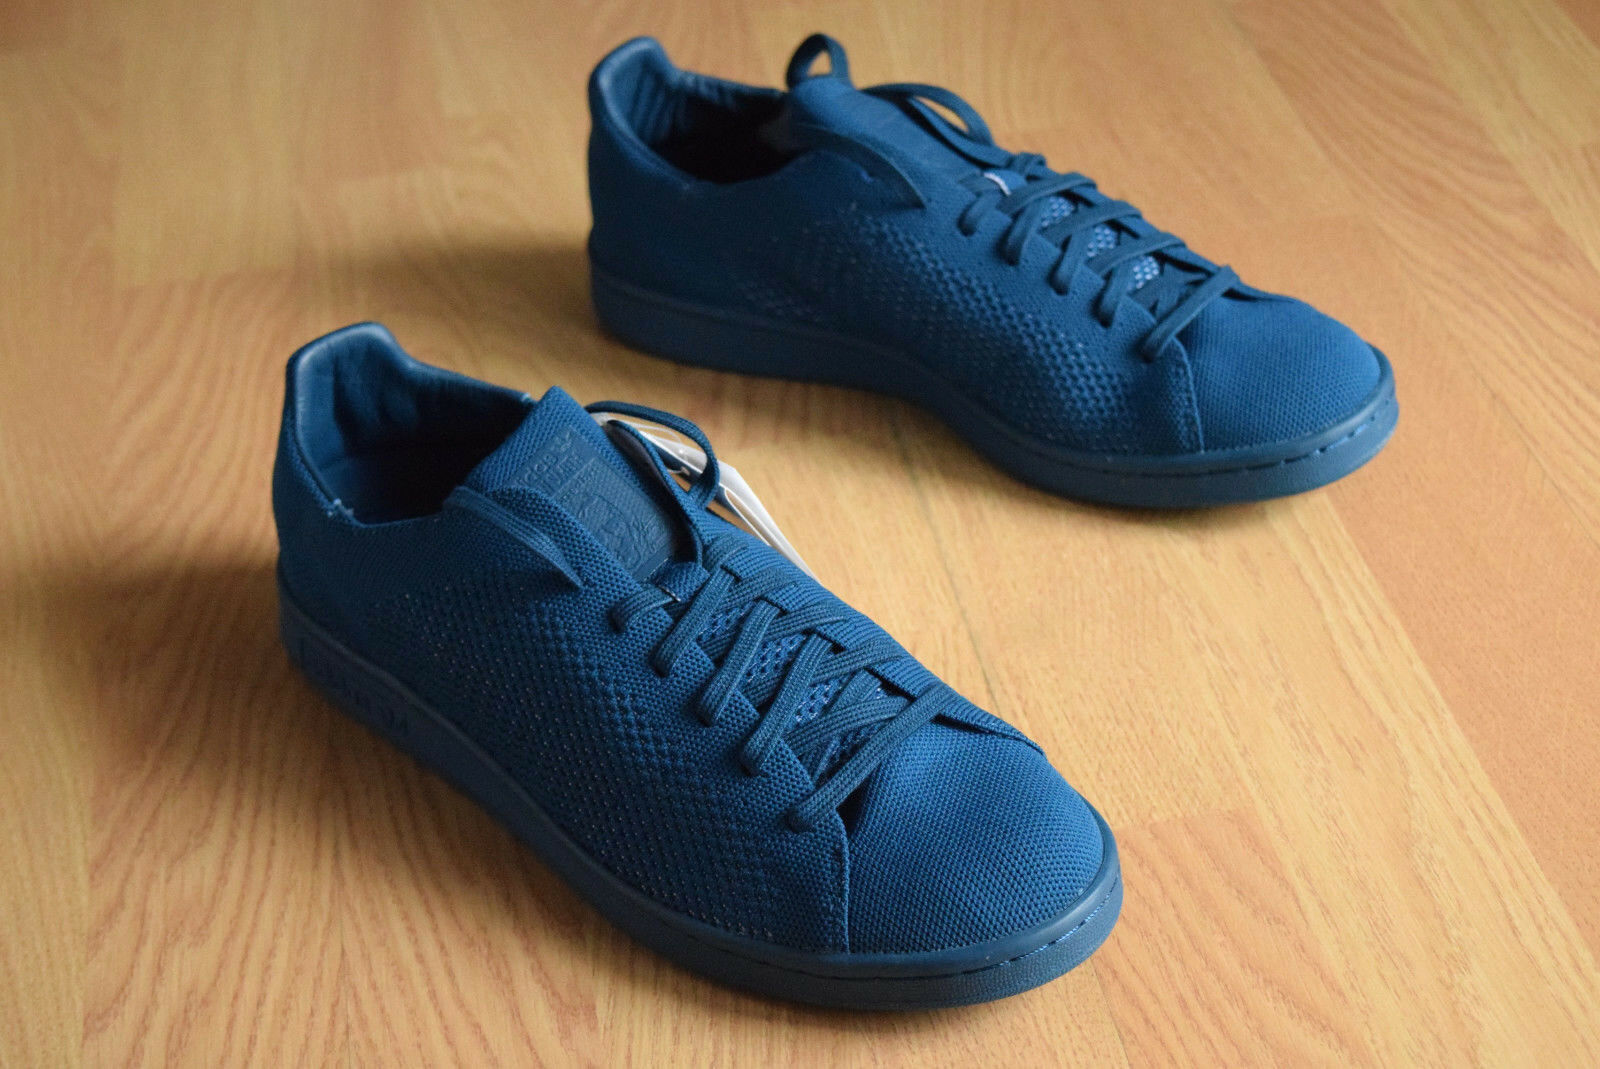 ADIDAS STAN SMITH 44 PK 39 40 41 42 42,5 43 44 SMITH 45 46 47 Primeknit Superstar Campus 3732be